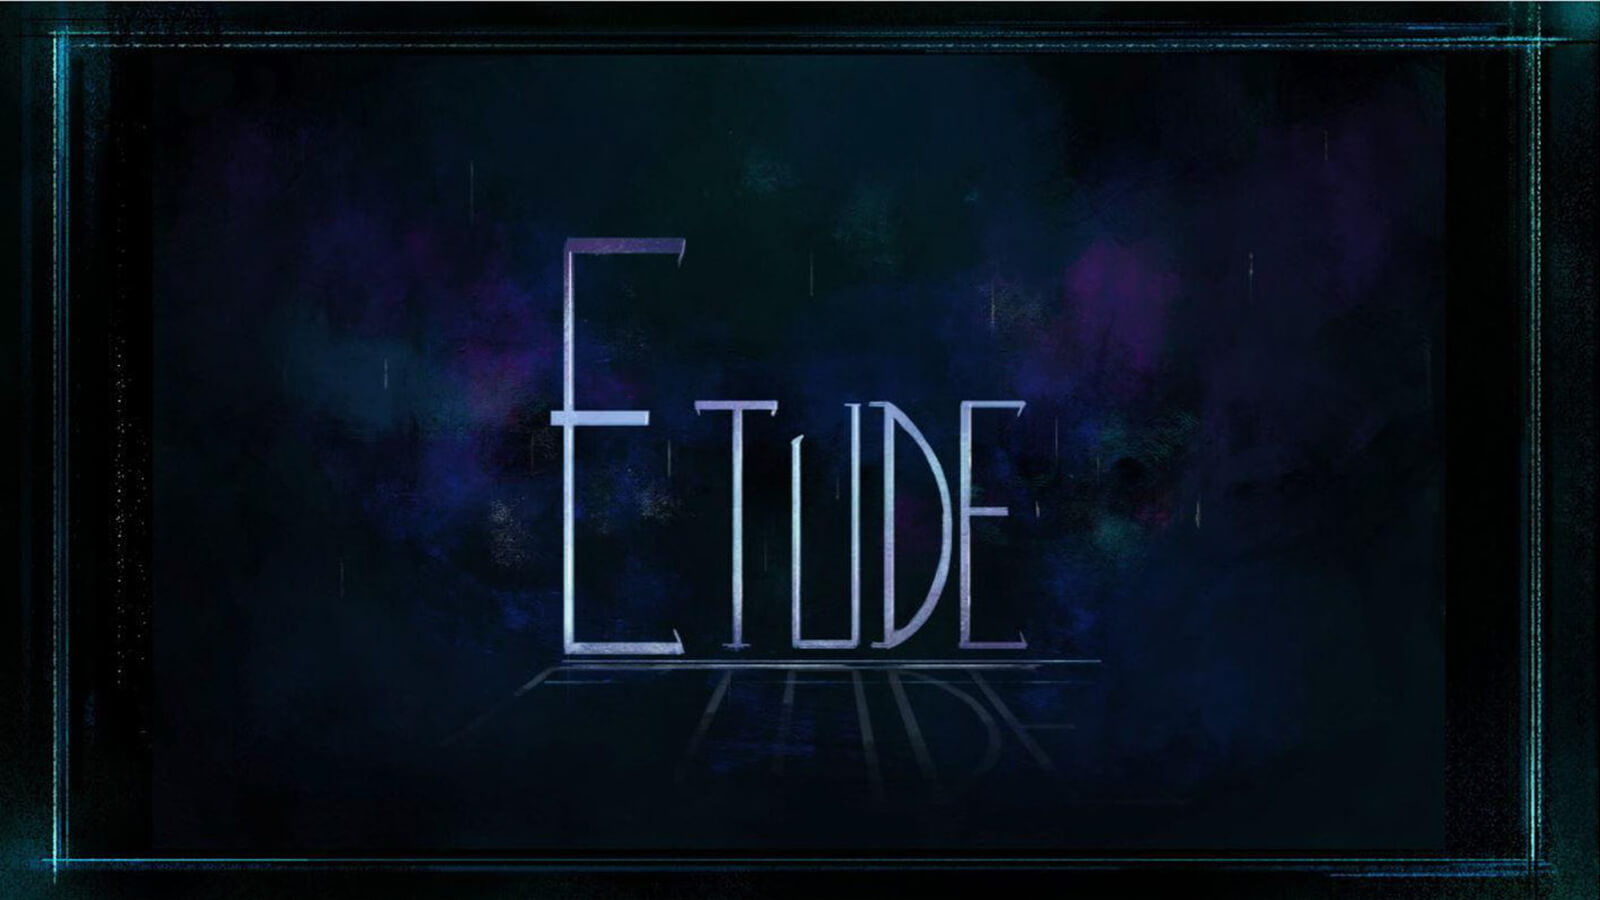 The title card for Etude.